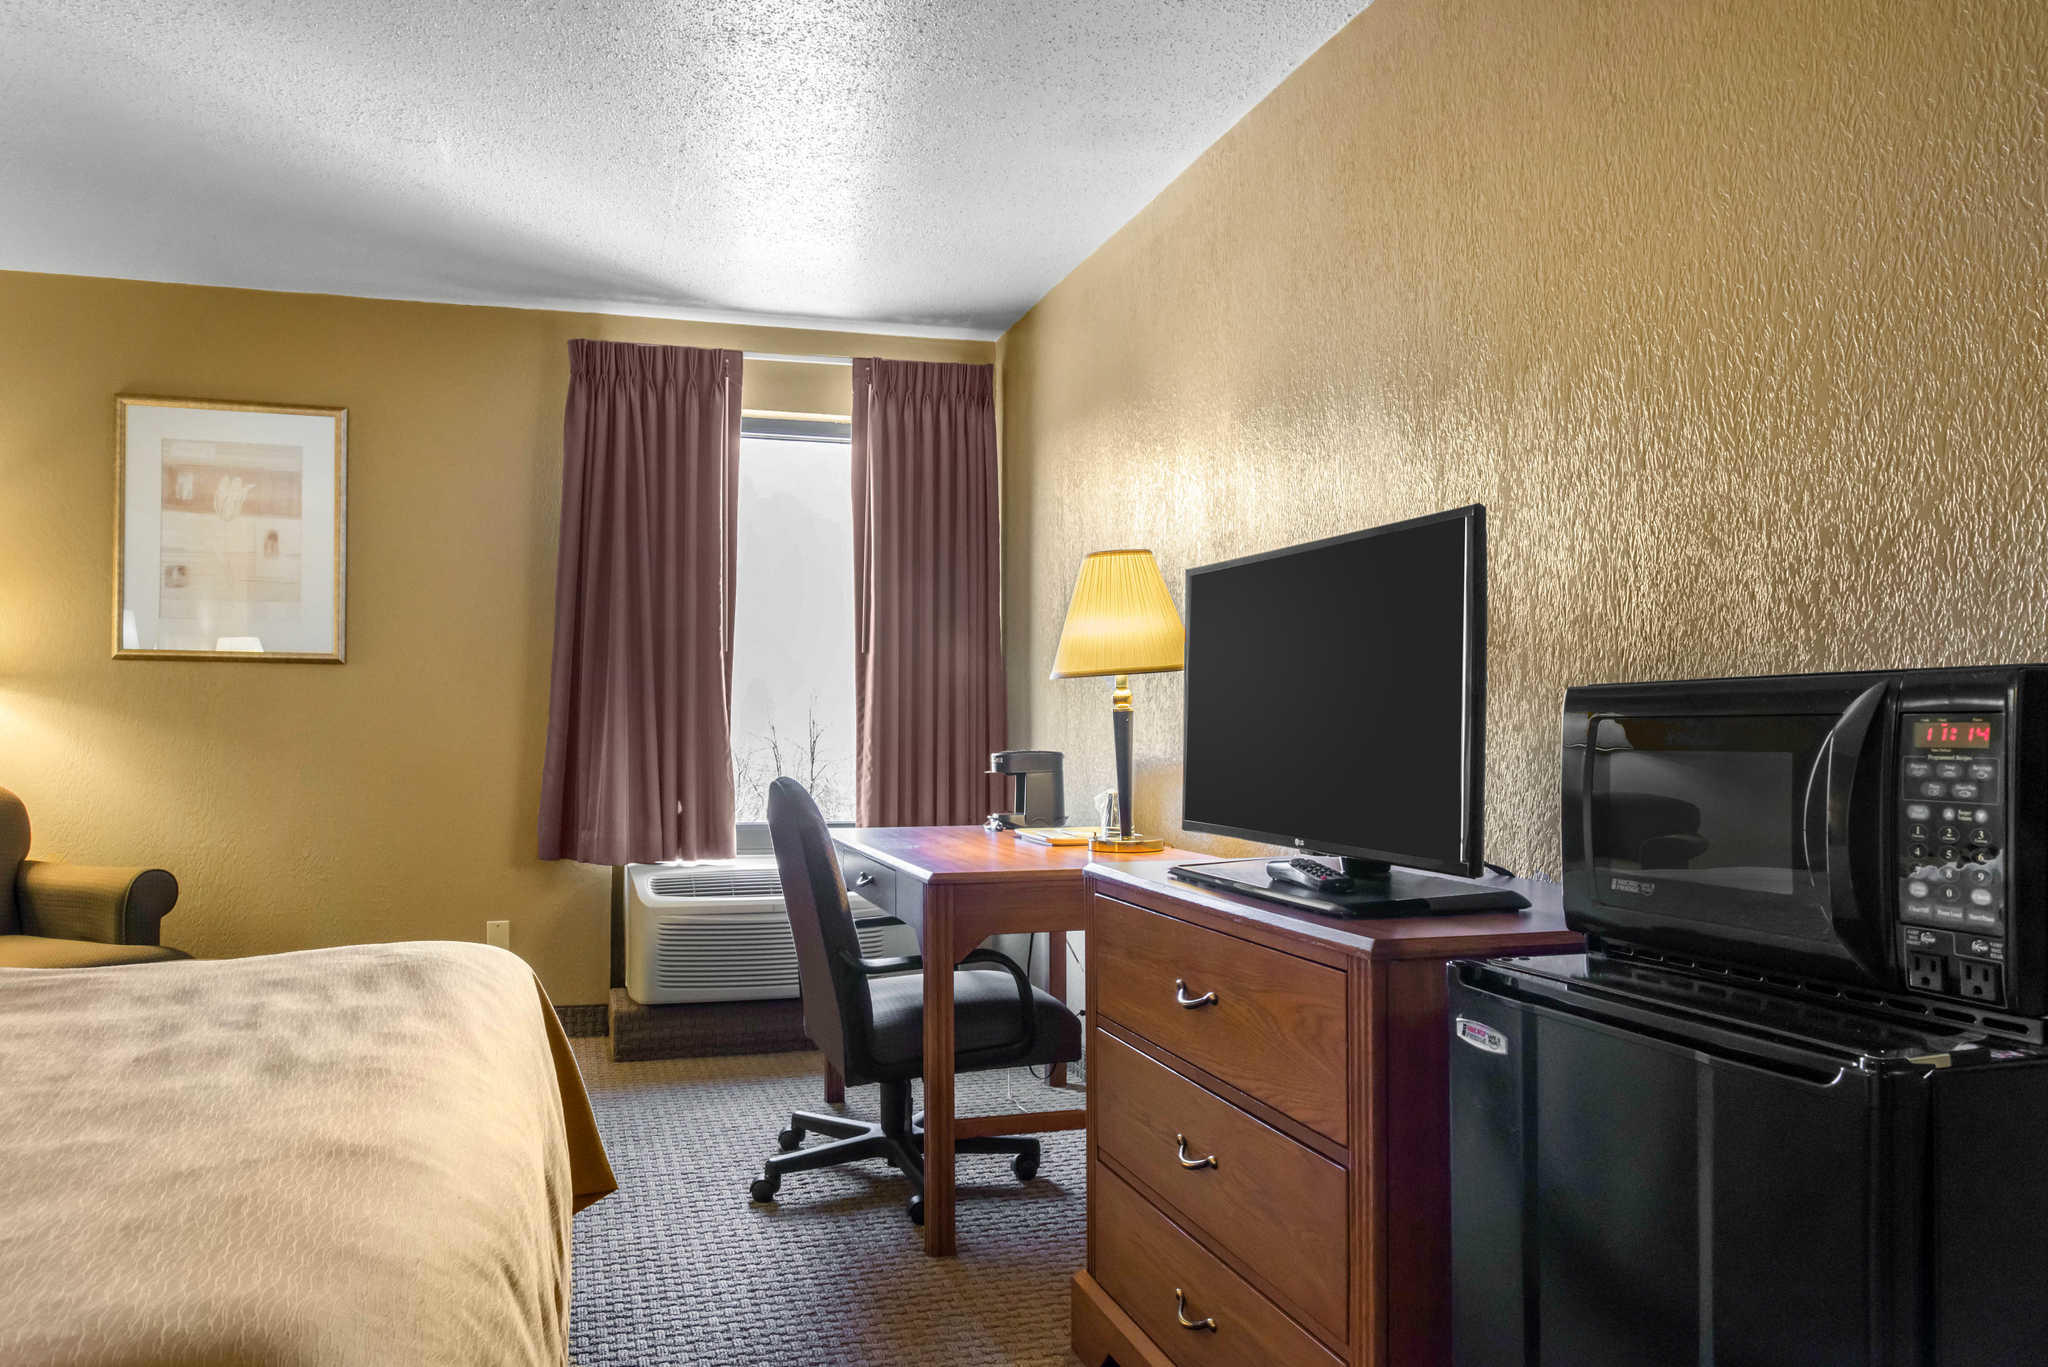 Quality Inn & Suites Coupons Johnstown PA near me   8coupons